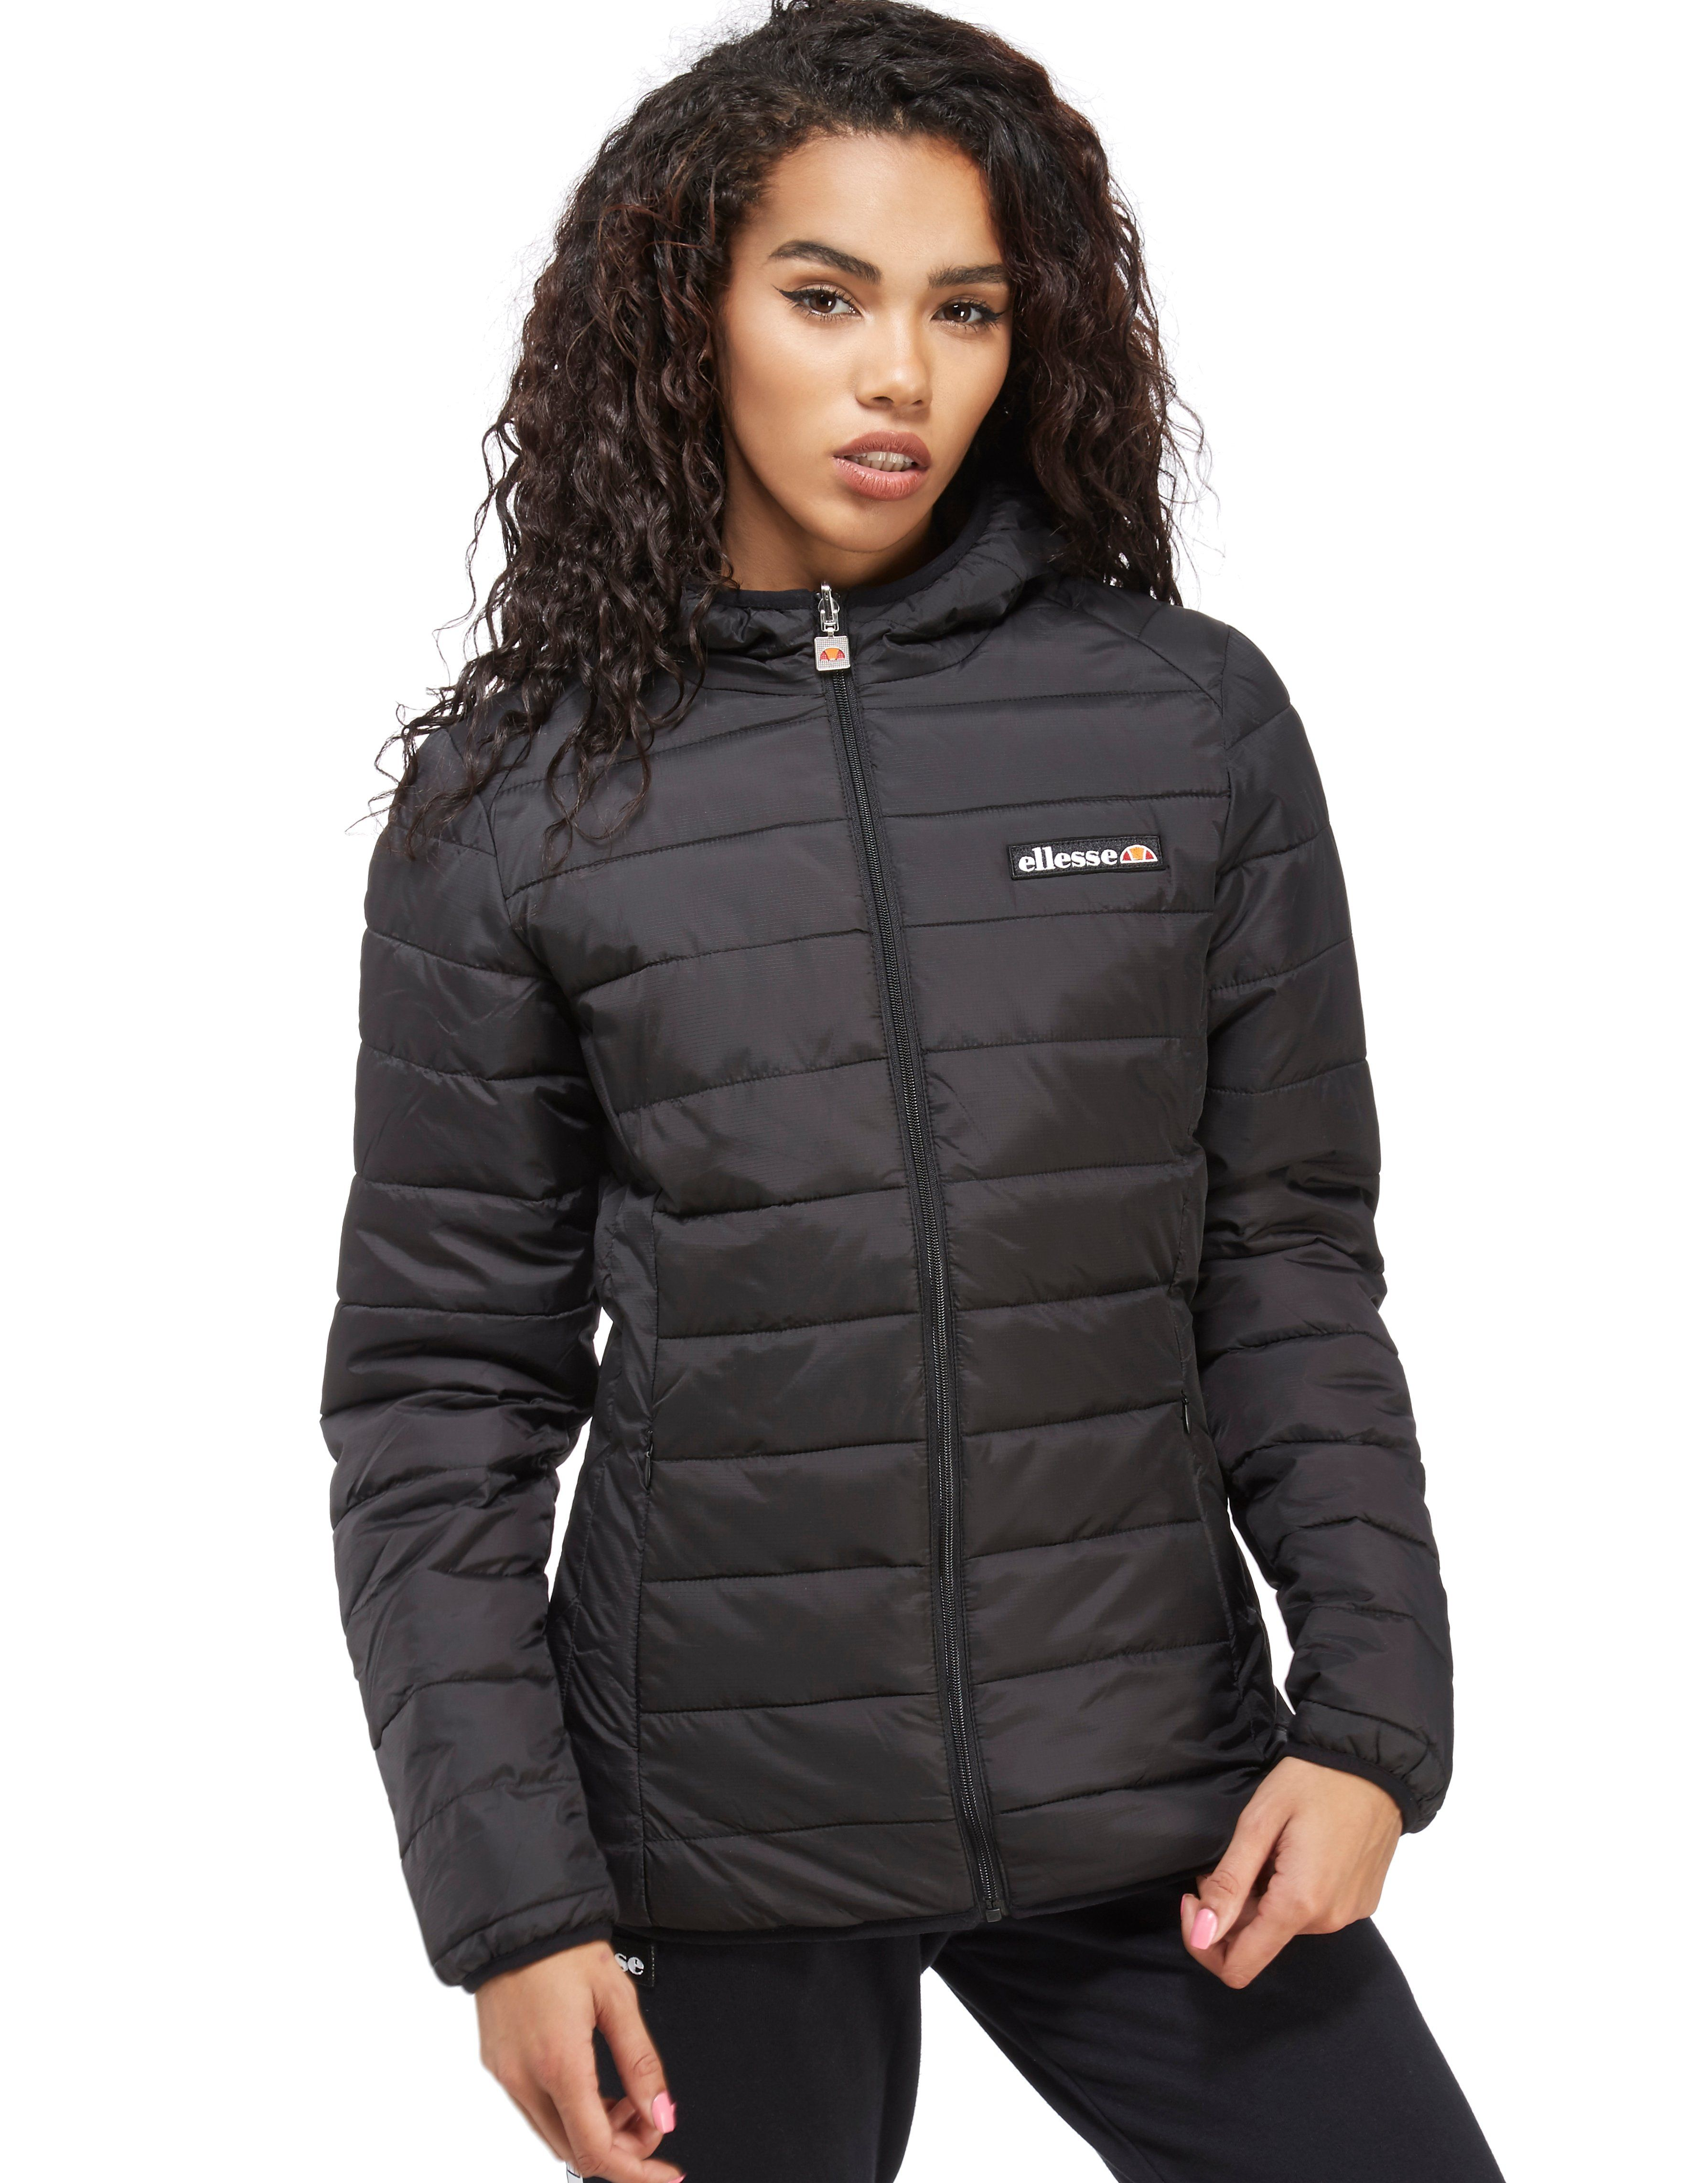 Ellesse arianna reversible jacket jd sports